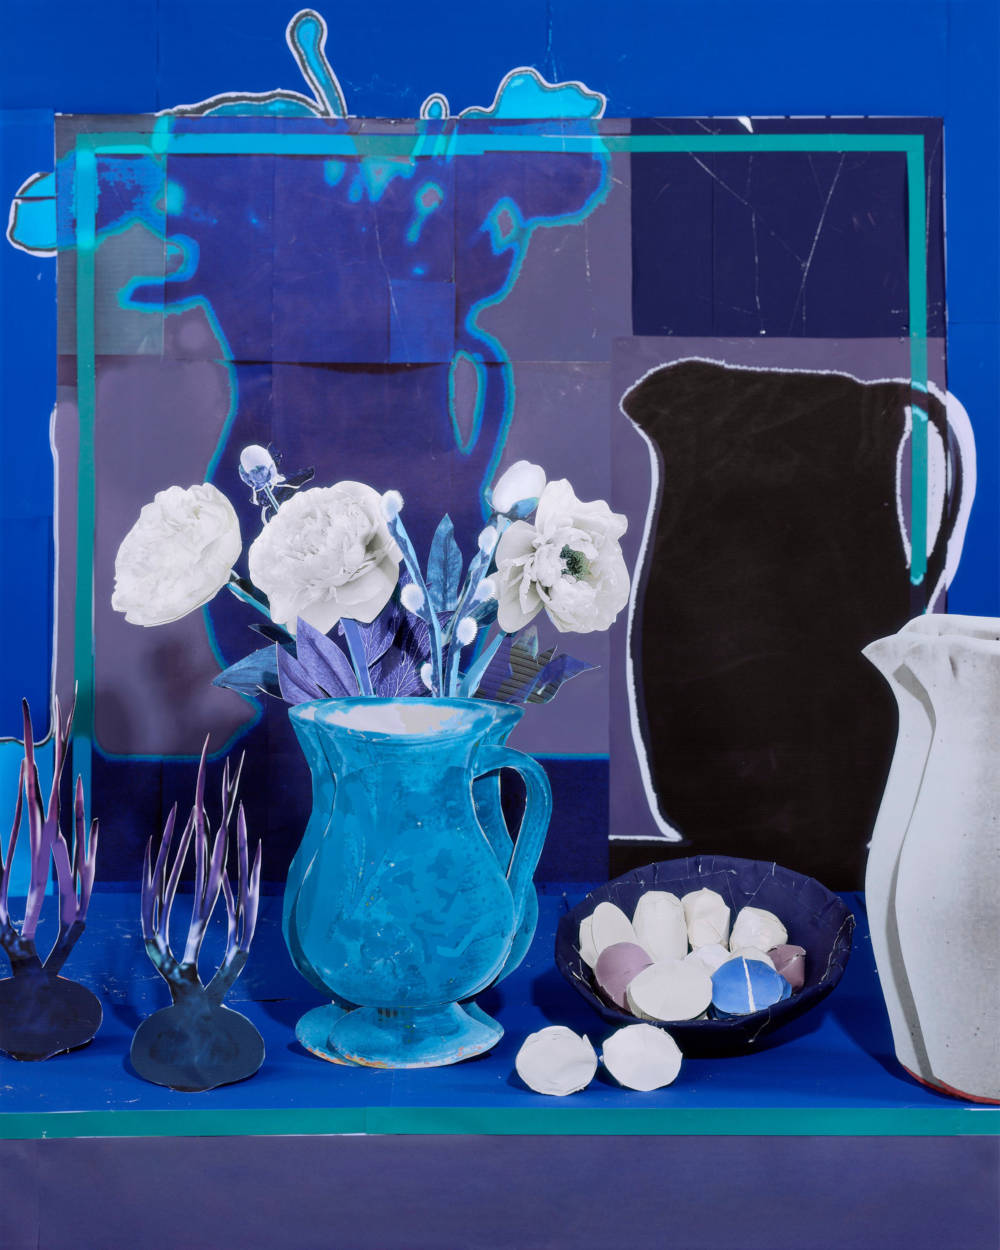 Daniel Gordon, Blue Still Life with White Peonies, Eggs and Onions, 2019. Pigment print 95.25 x 75.57 cm (37 1/2 x 29 3/4 in.) Edition 1 of 3 plus 1 AP. Copyright Daniel Gordon, Courtesy of the artist and James Fuentes, New York